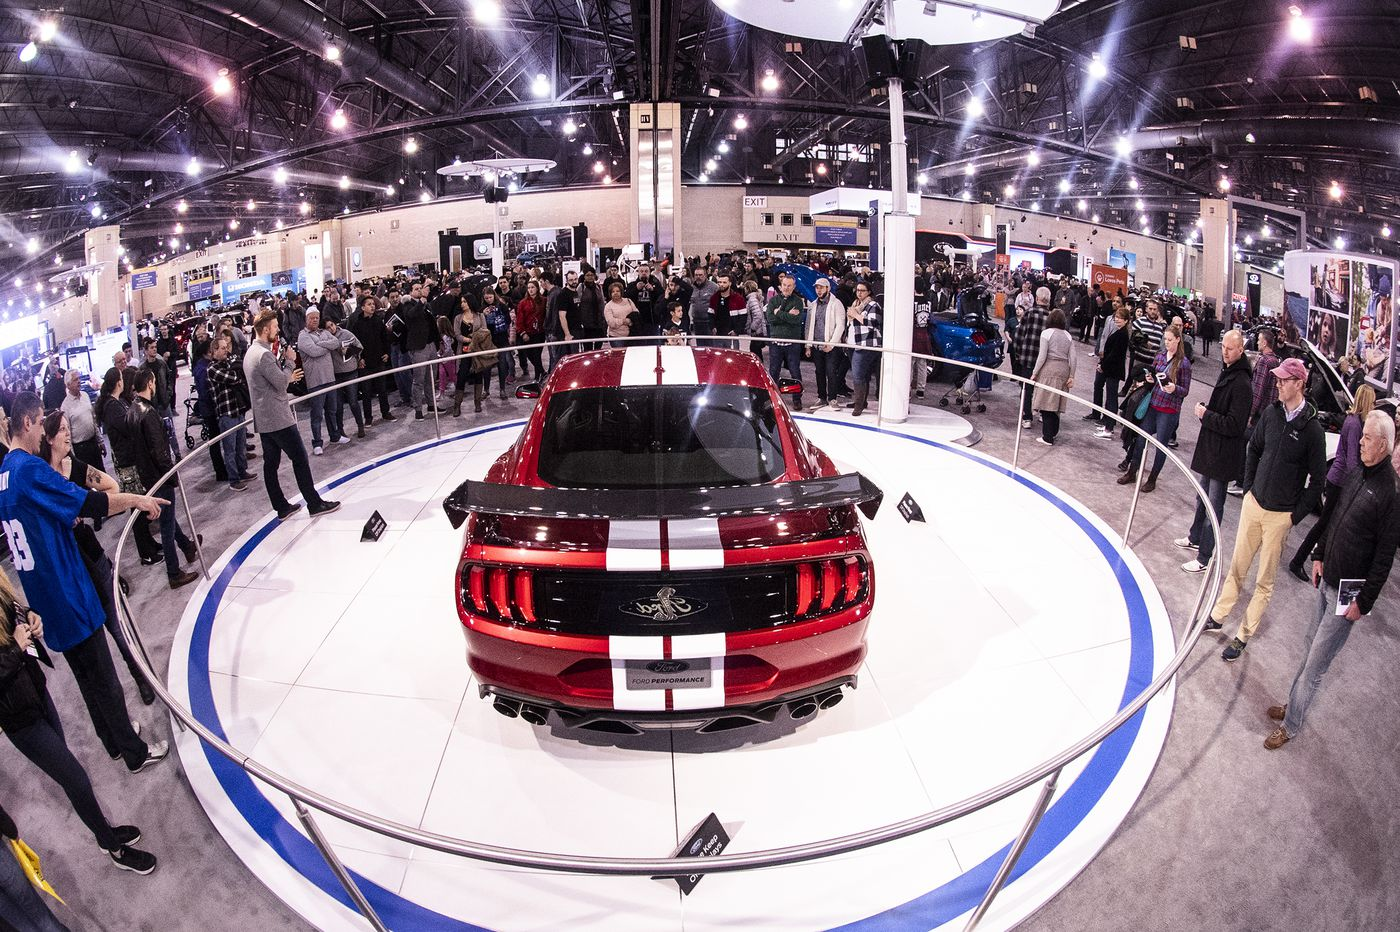 Philly Auto Show 2020.This Super Bowl Sunday The Philly Special Was Cars In